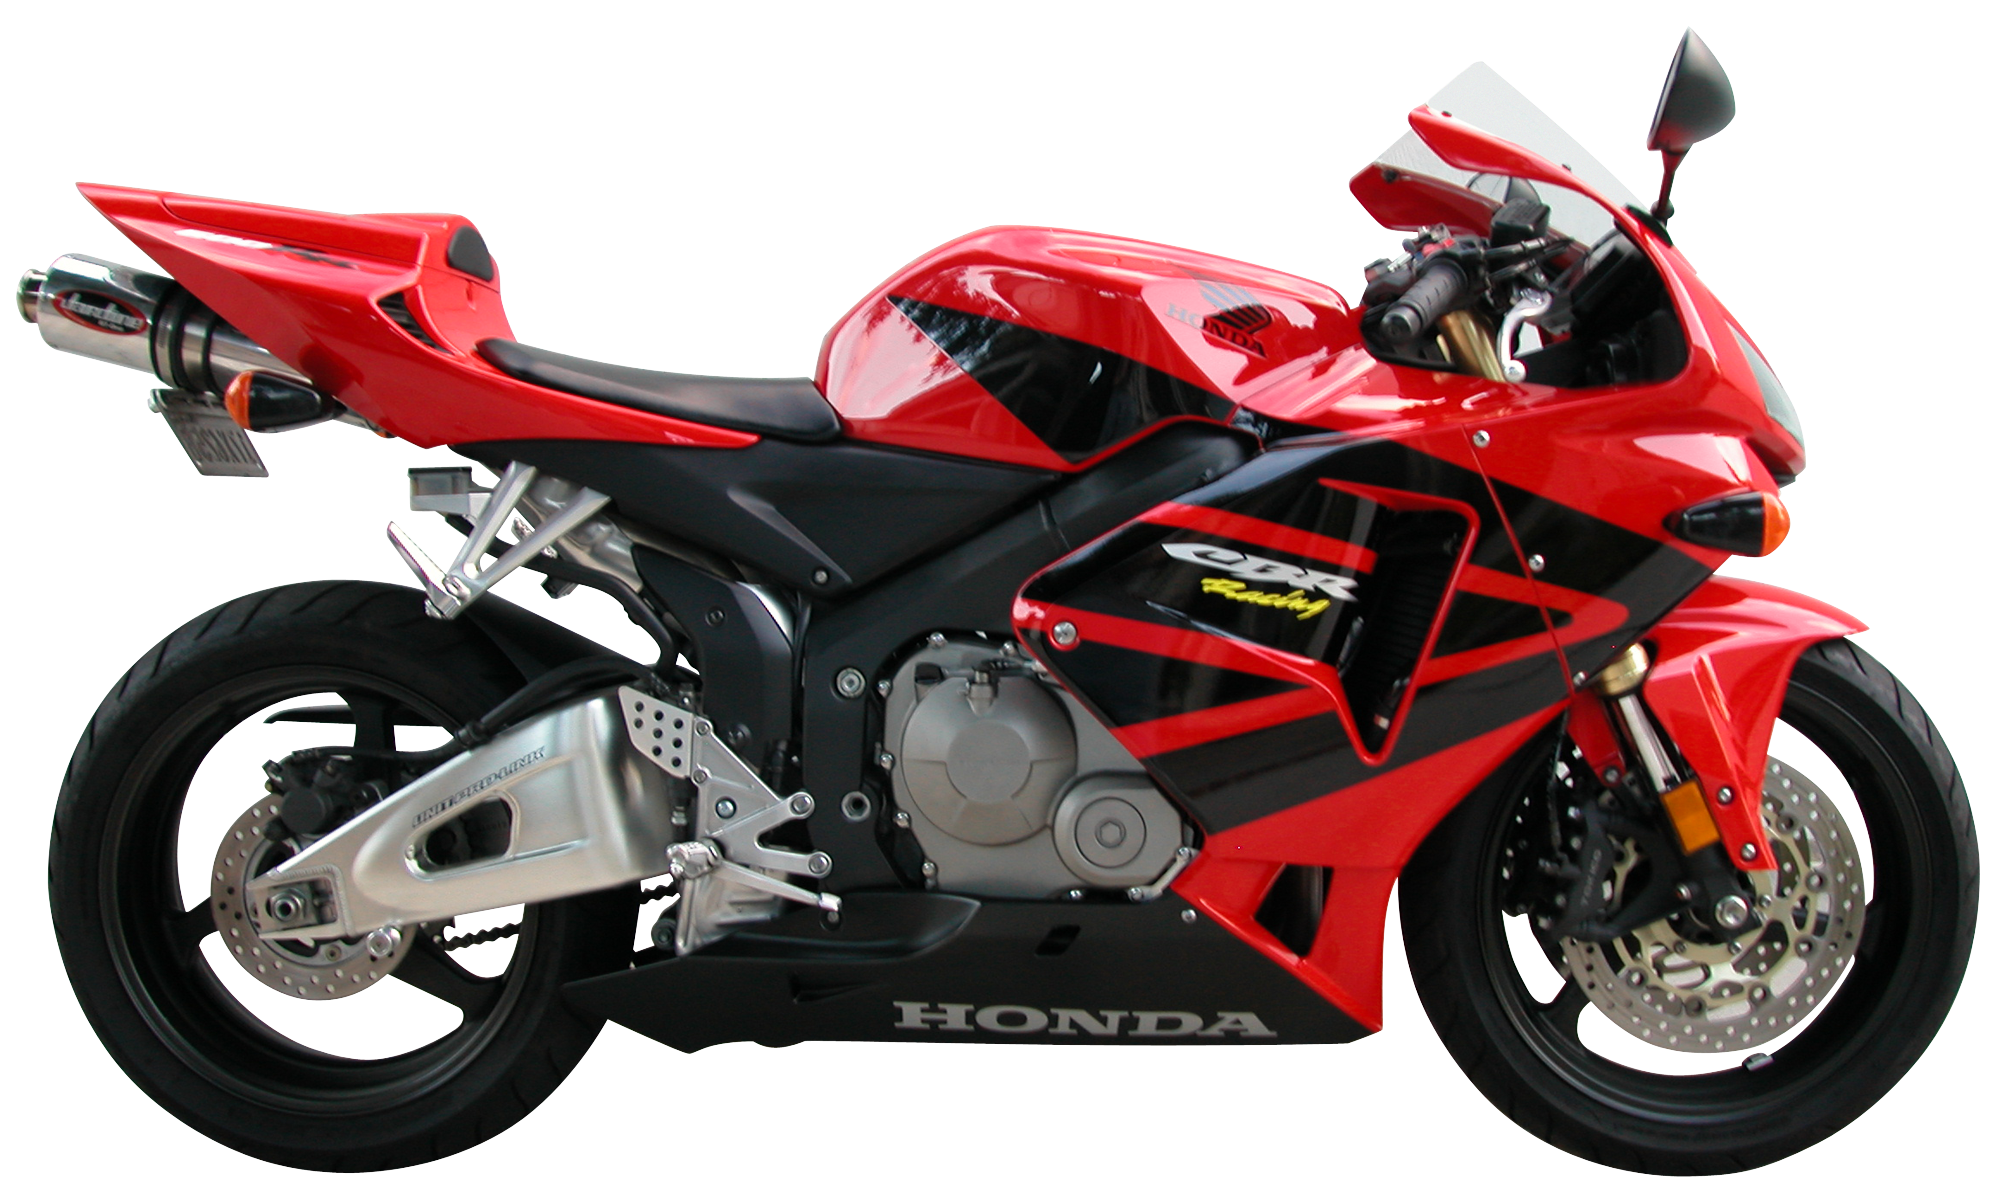 Red sport moto PNG image, red sport motorcycle PNG